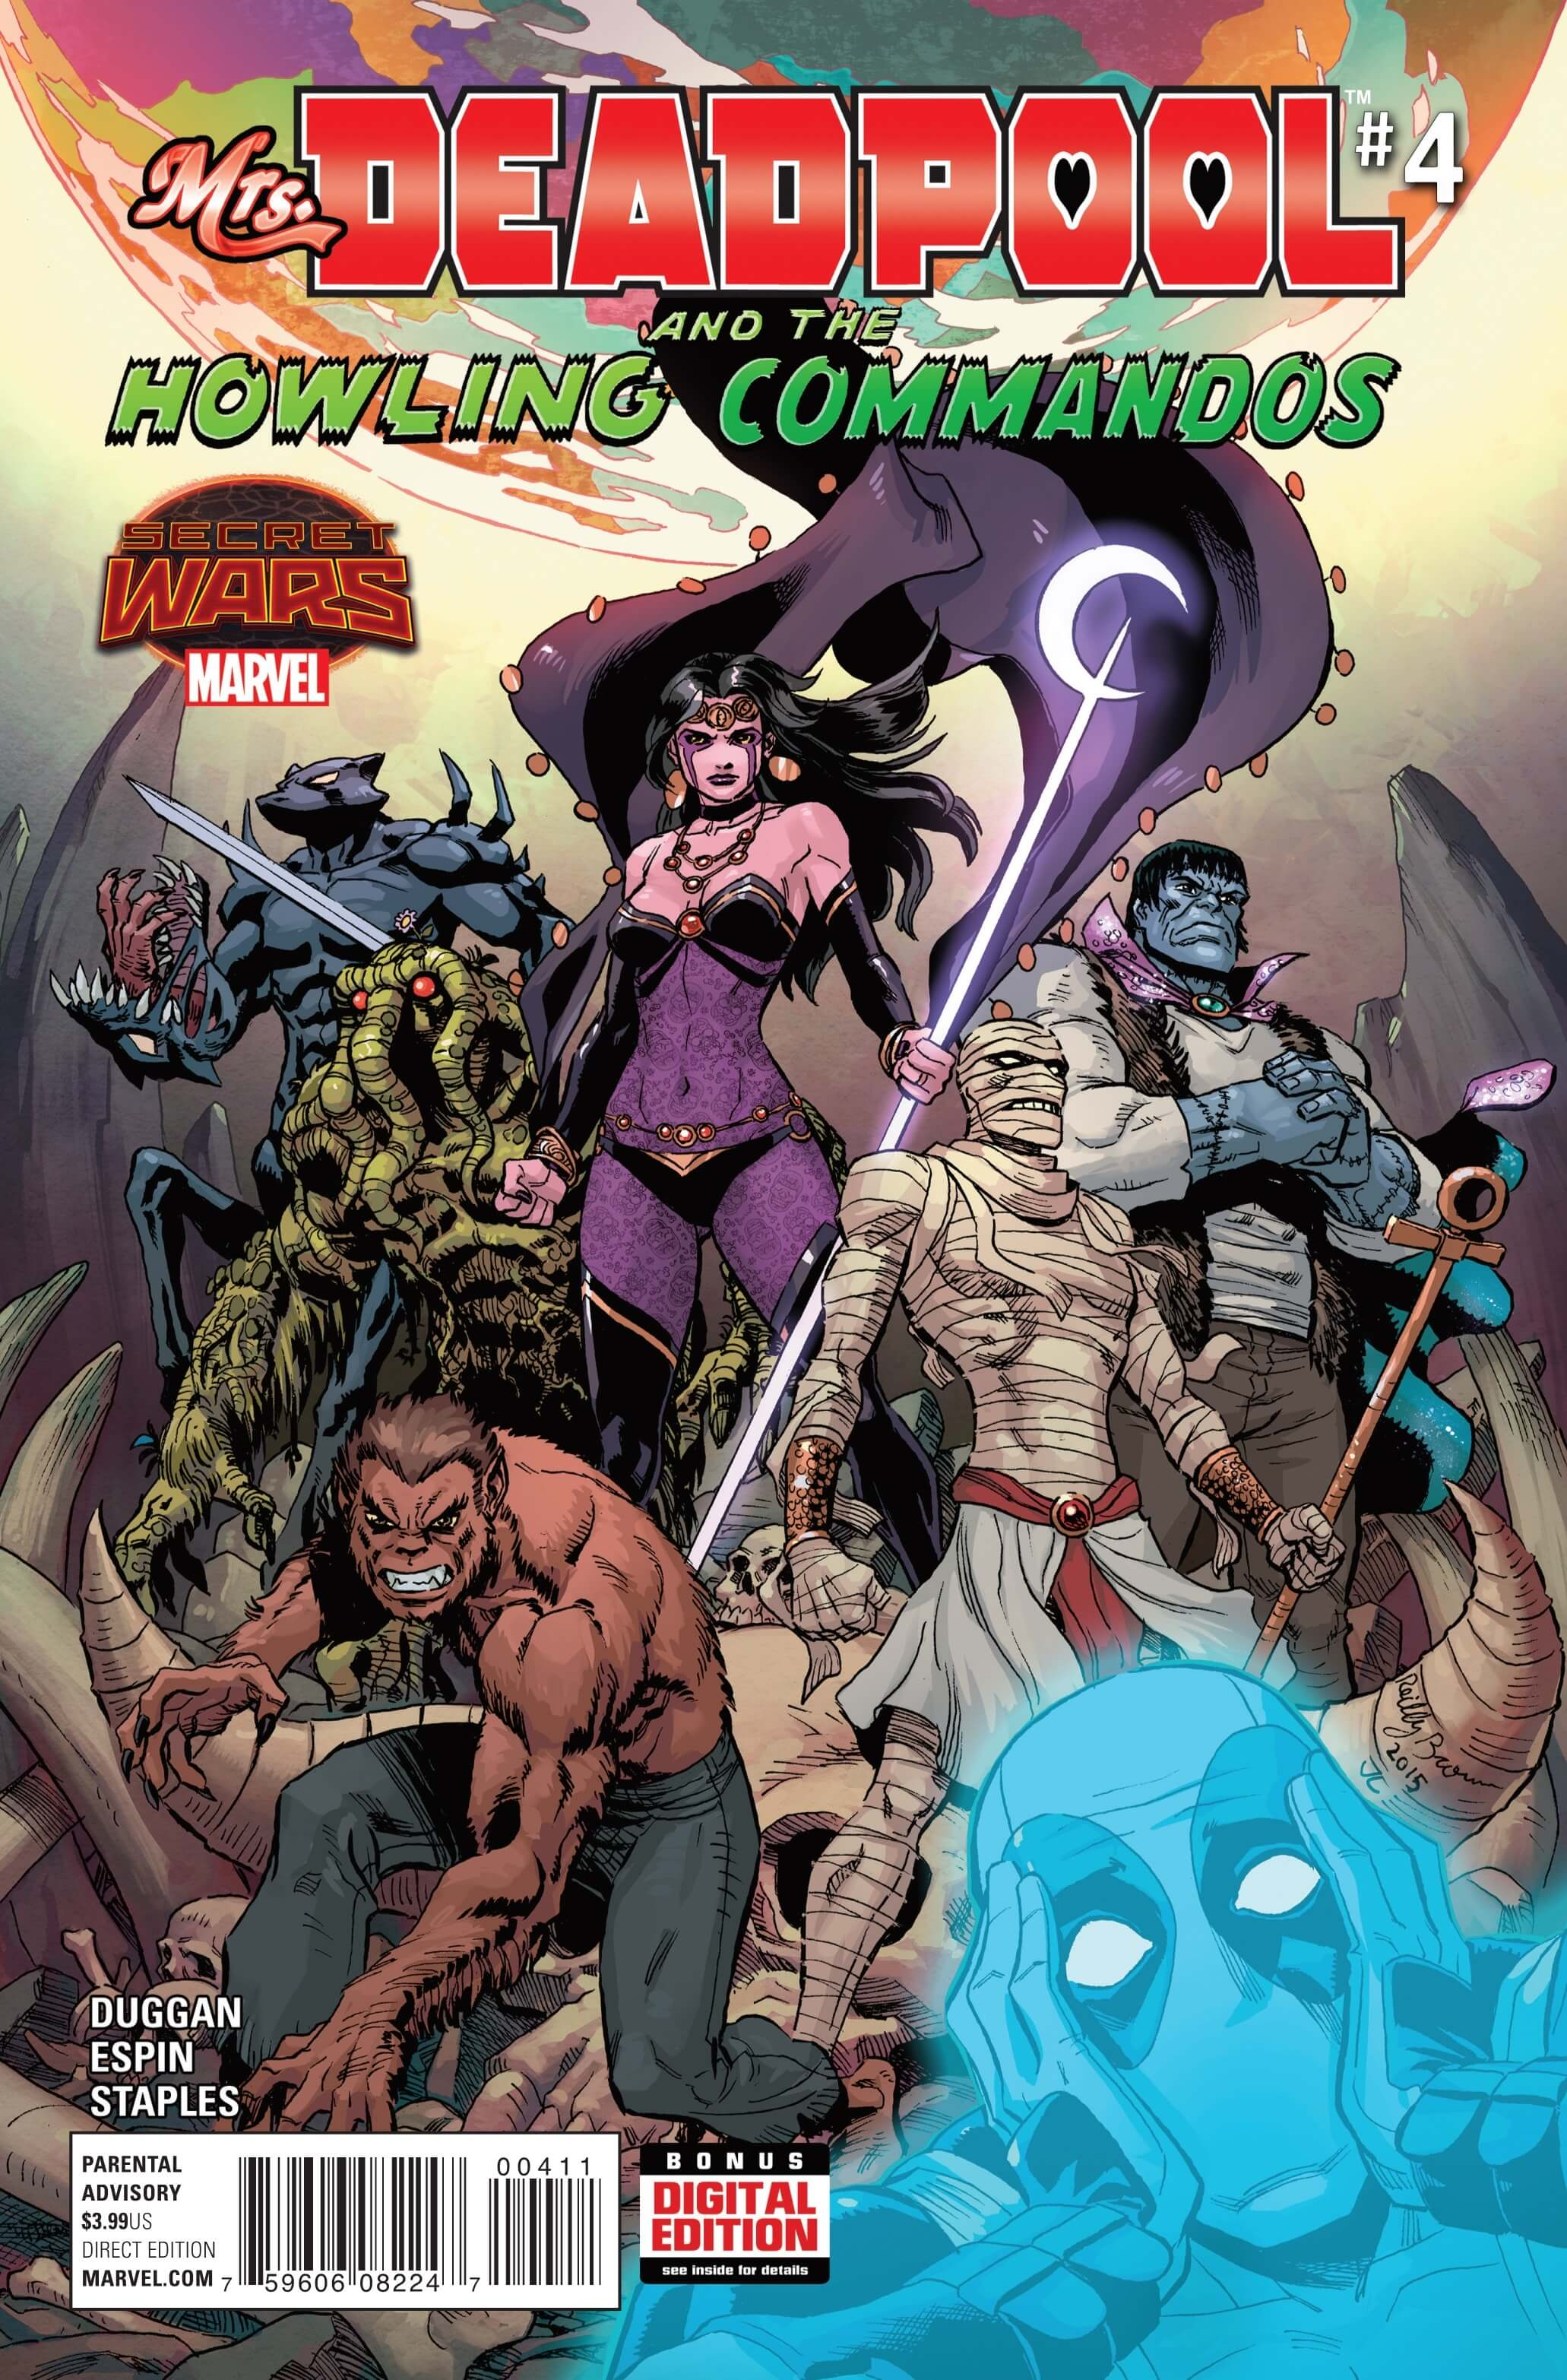 Mrs. Deadpool and the Howling Commandos #4cvrA